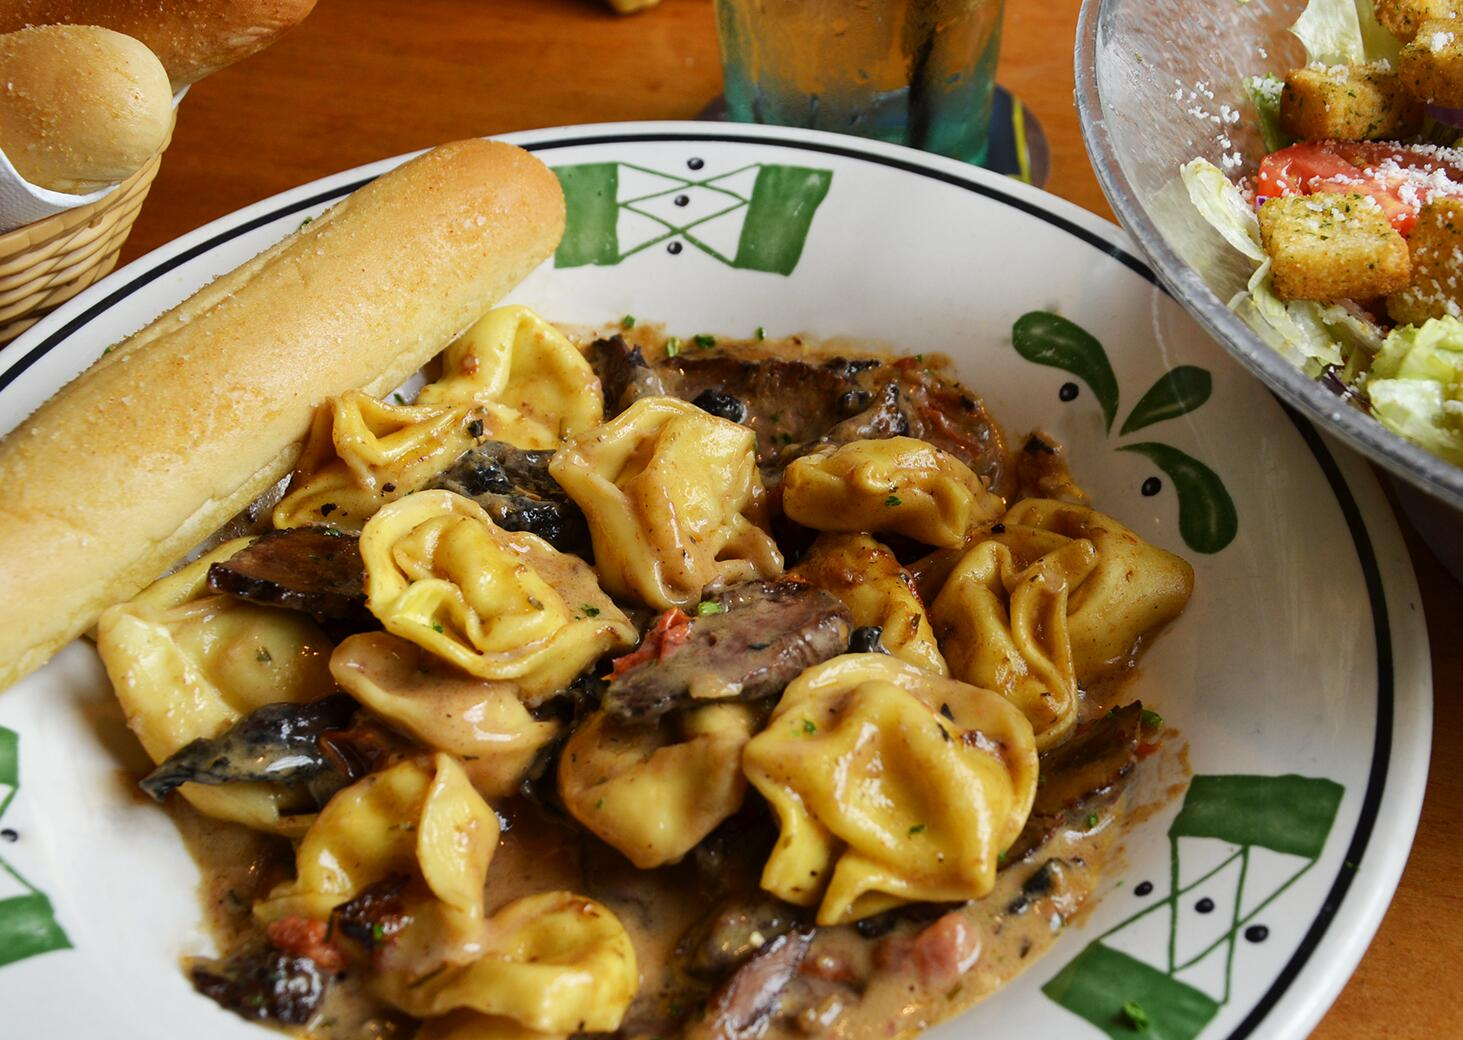 Olive garden on twitter braised beef tortelloni has returned tell your friends that they What time does the olive garden close